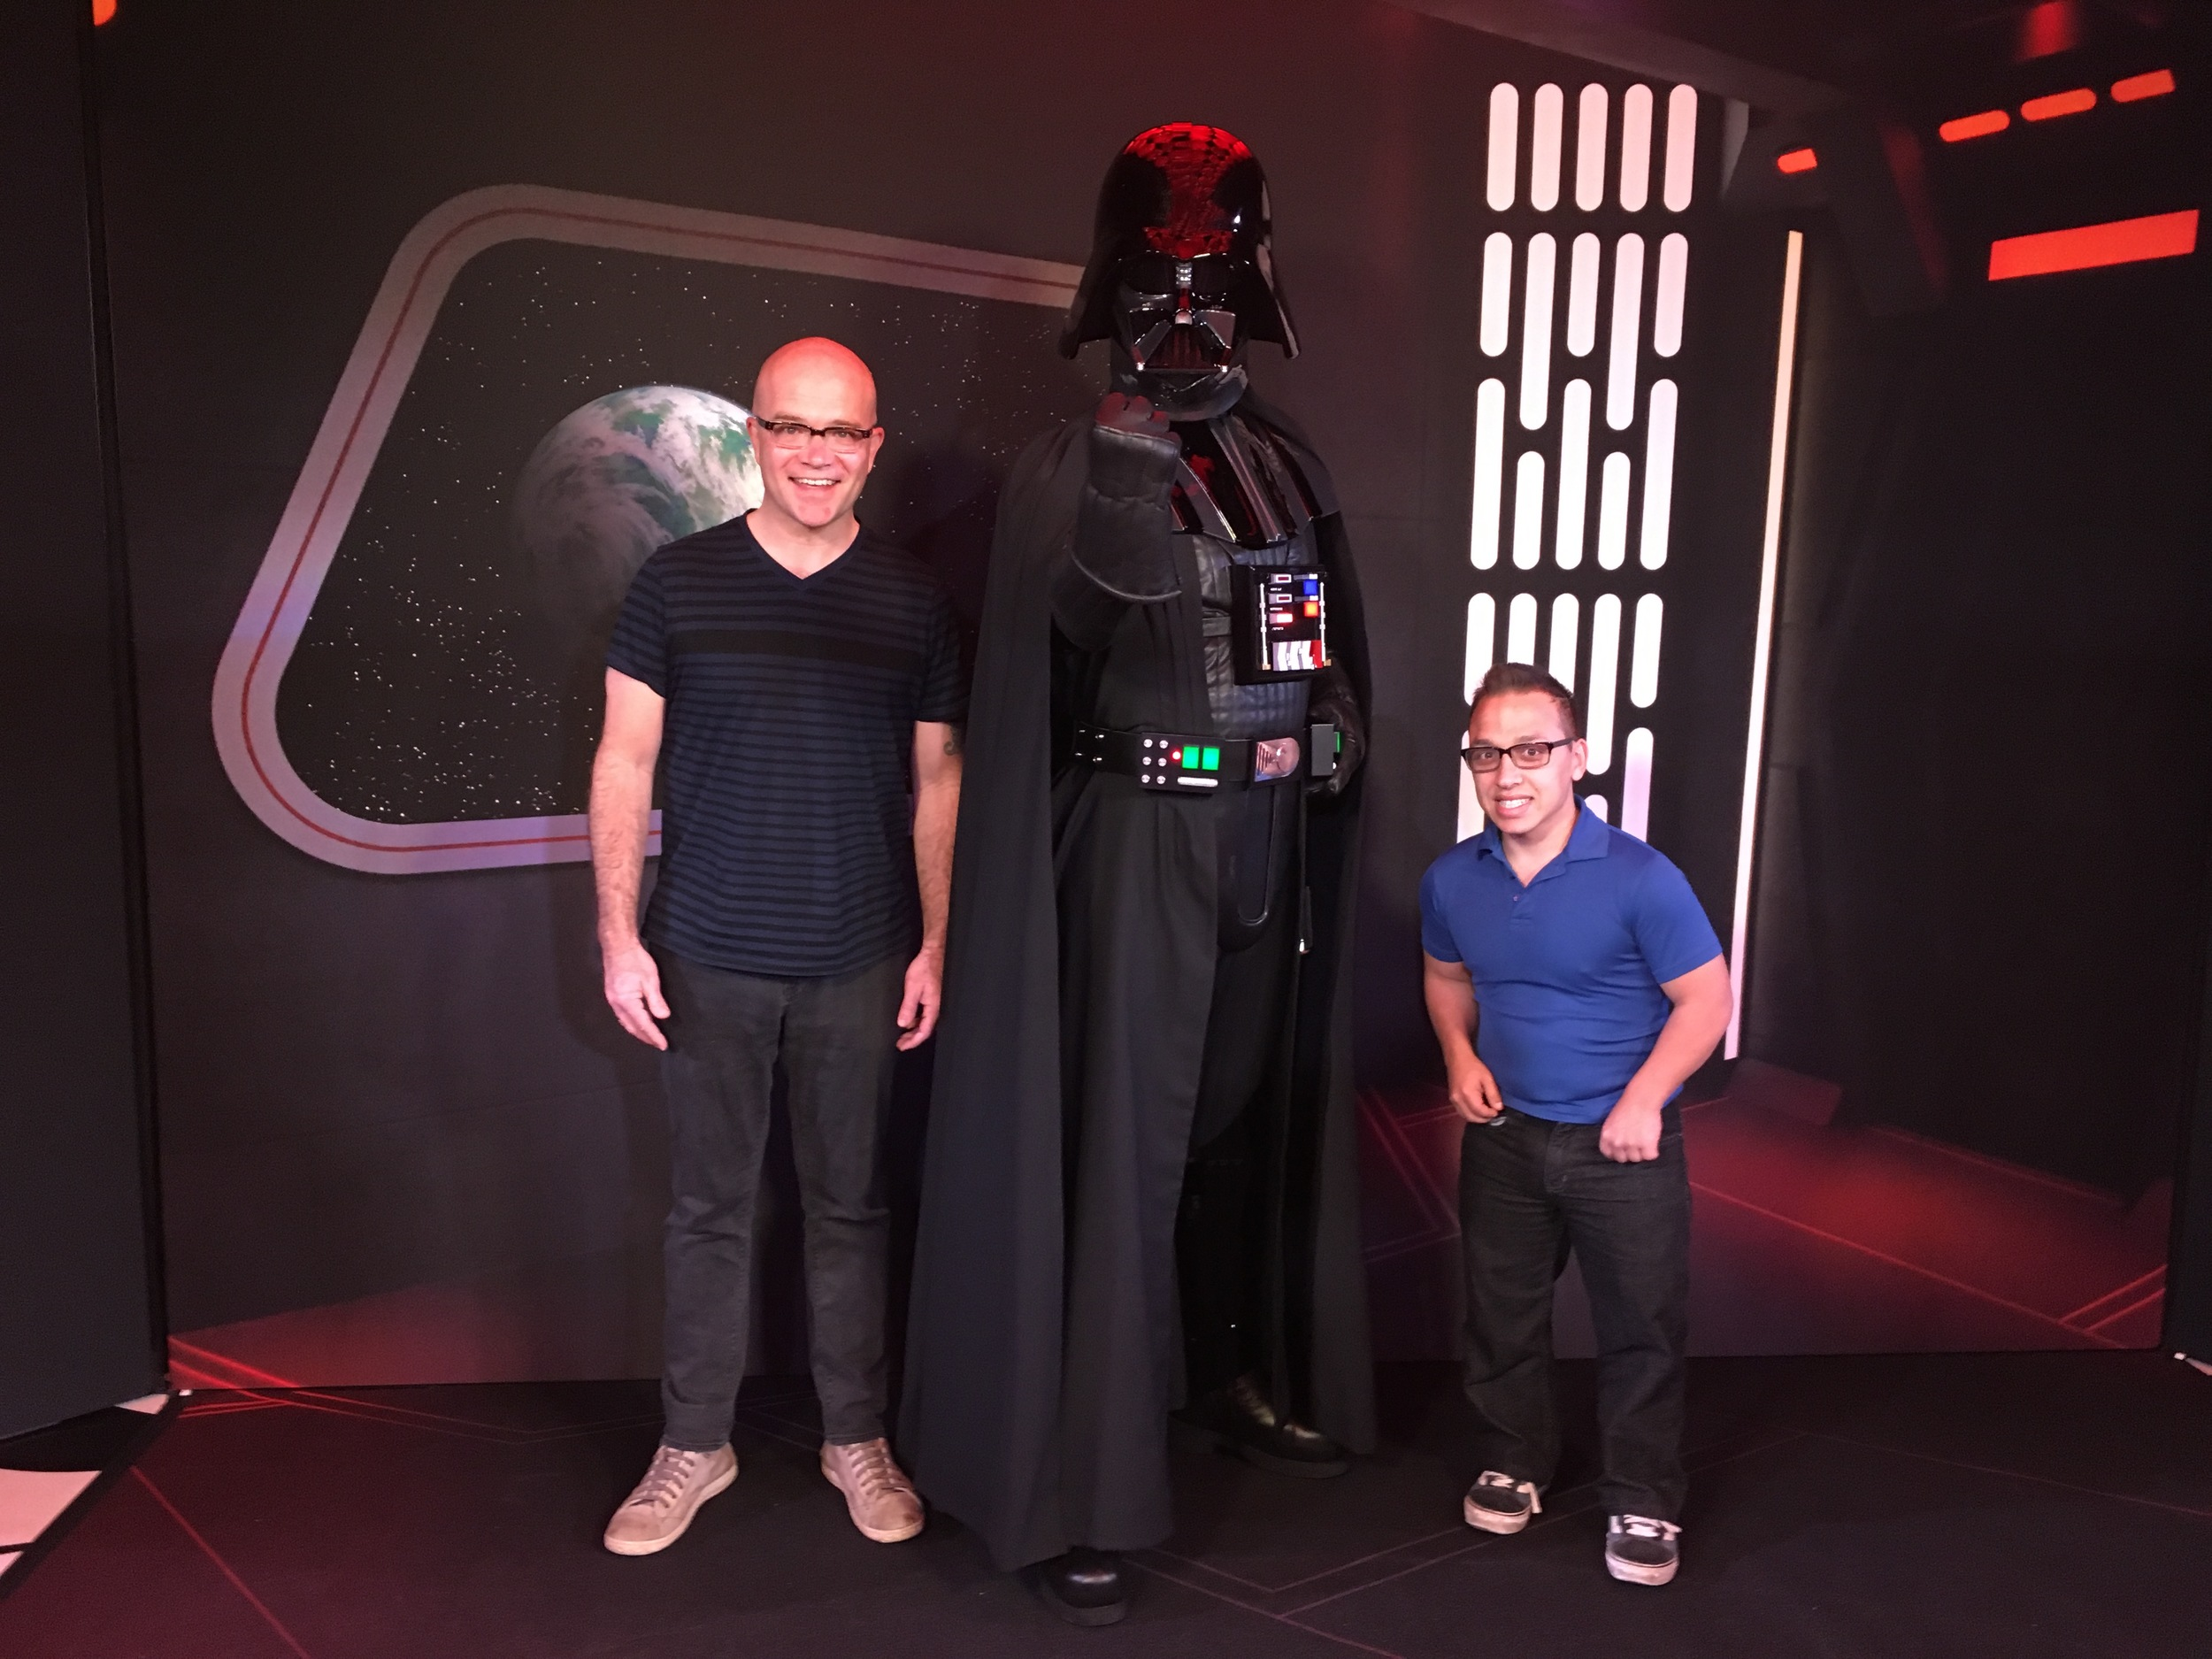 Jon and his son Max get grilled by Darth Vader.